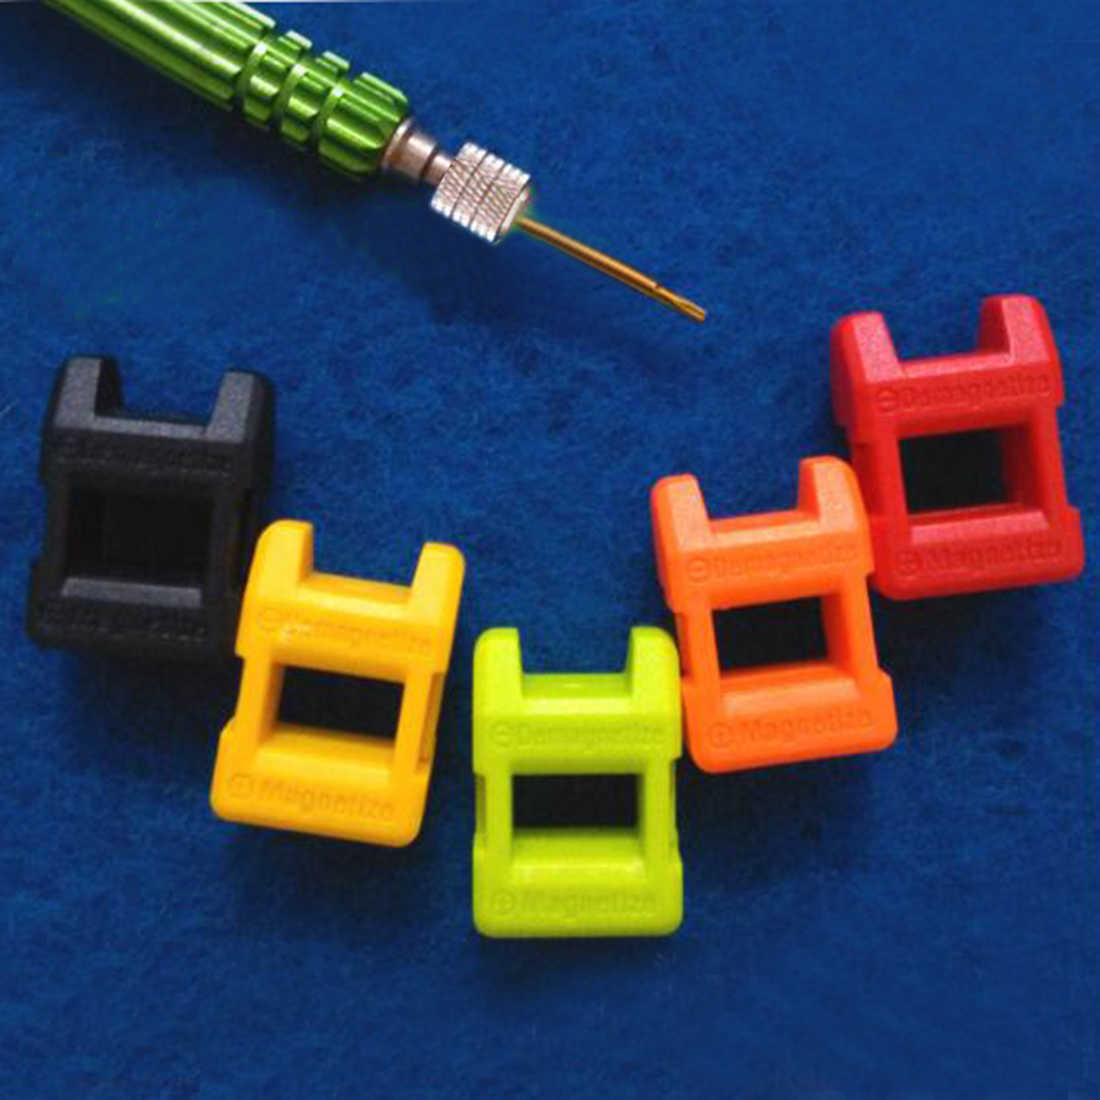 Mini - Fast 2 in 1 Magnetizer Demagnetizer Tool Screwdriver Magnetic High Quality Colour Send Random